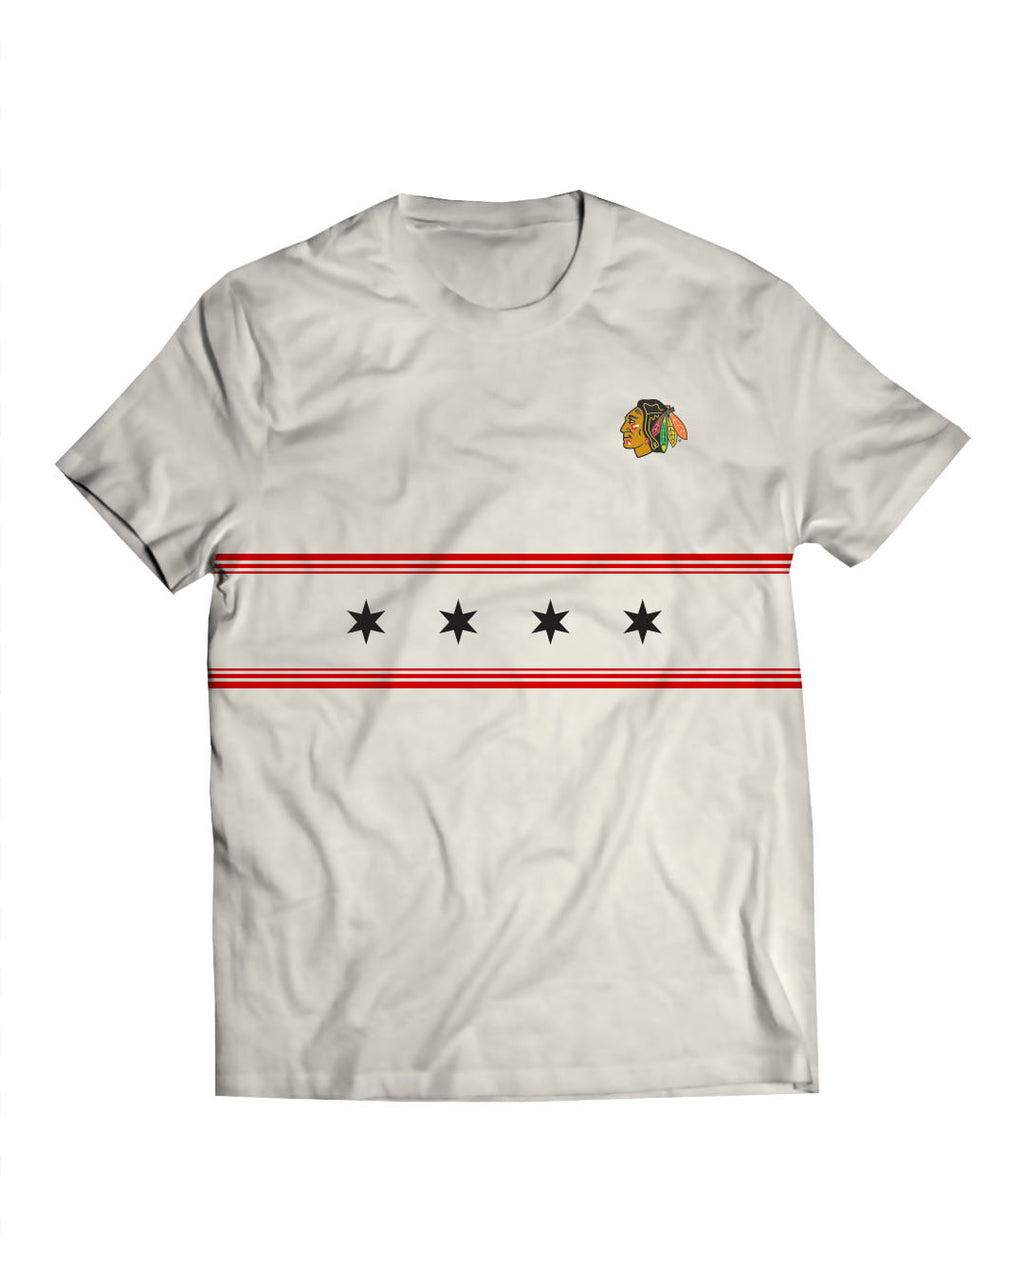 Blackhawks Stars White Tee